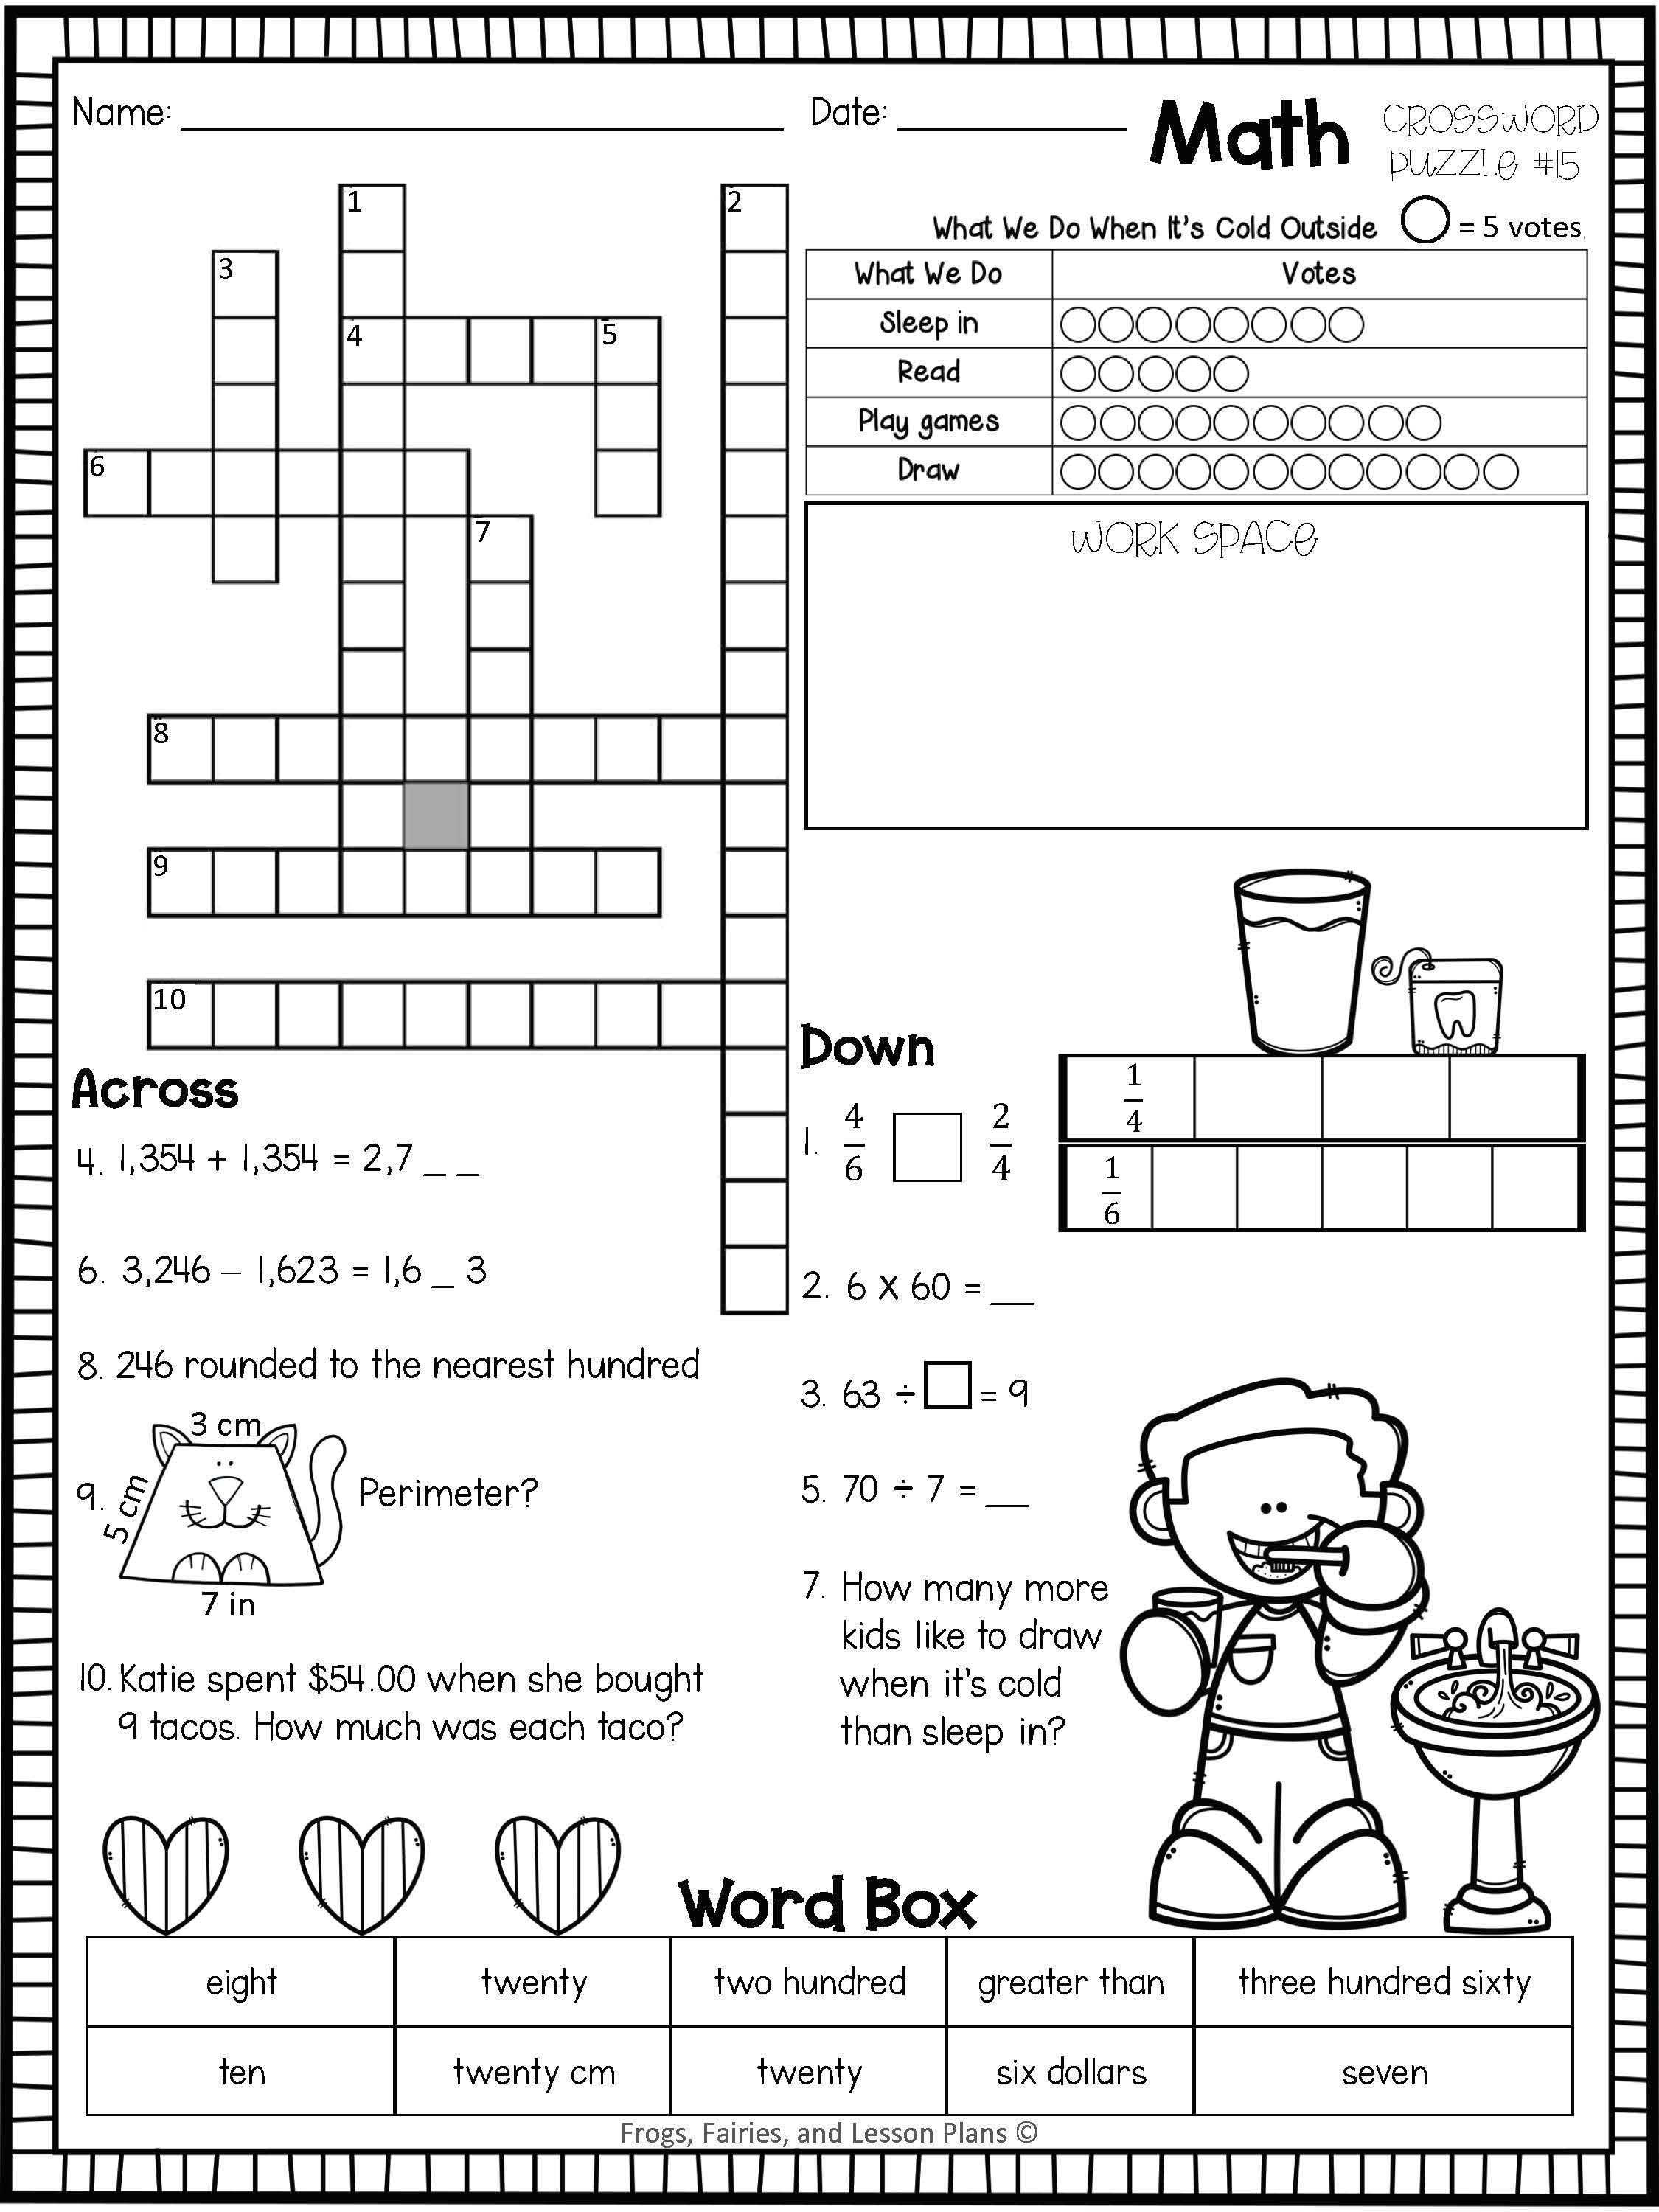 Crossword Puzzles All Fun And Games In